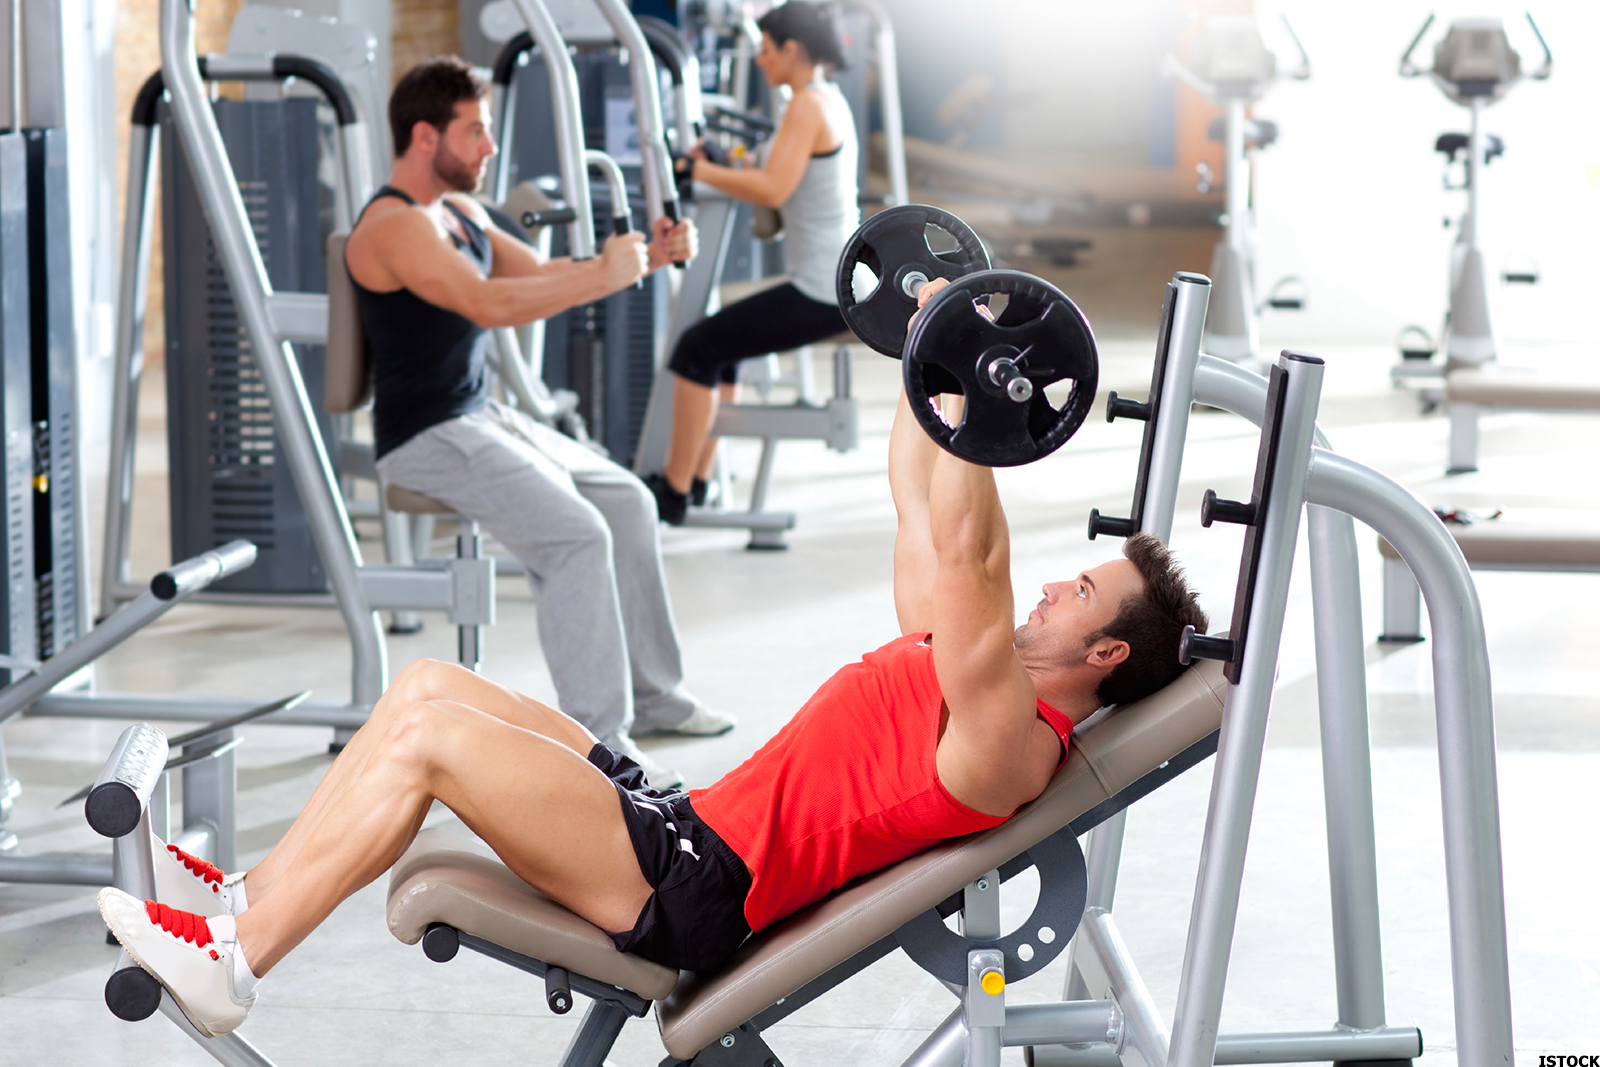 How to pick the right fitness center for your wallet and lifestyle how to pick the right fitness center for your wallet and lifestyle thestreet buycottarizona Choice Image